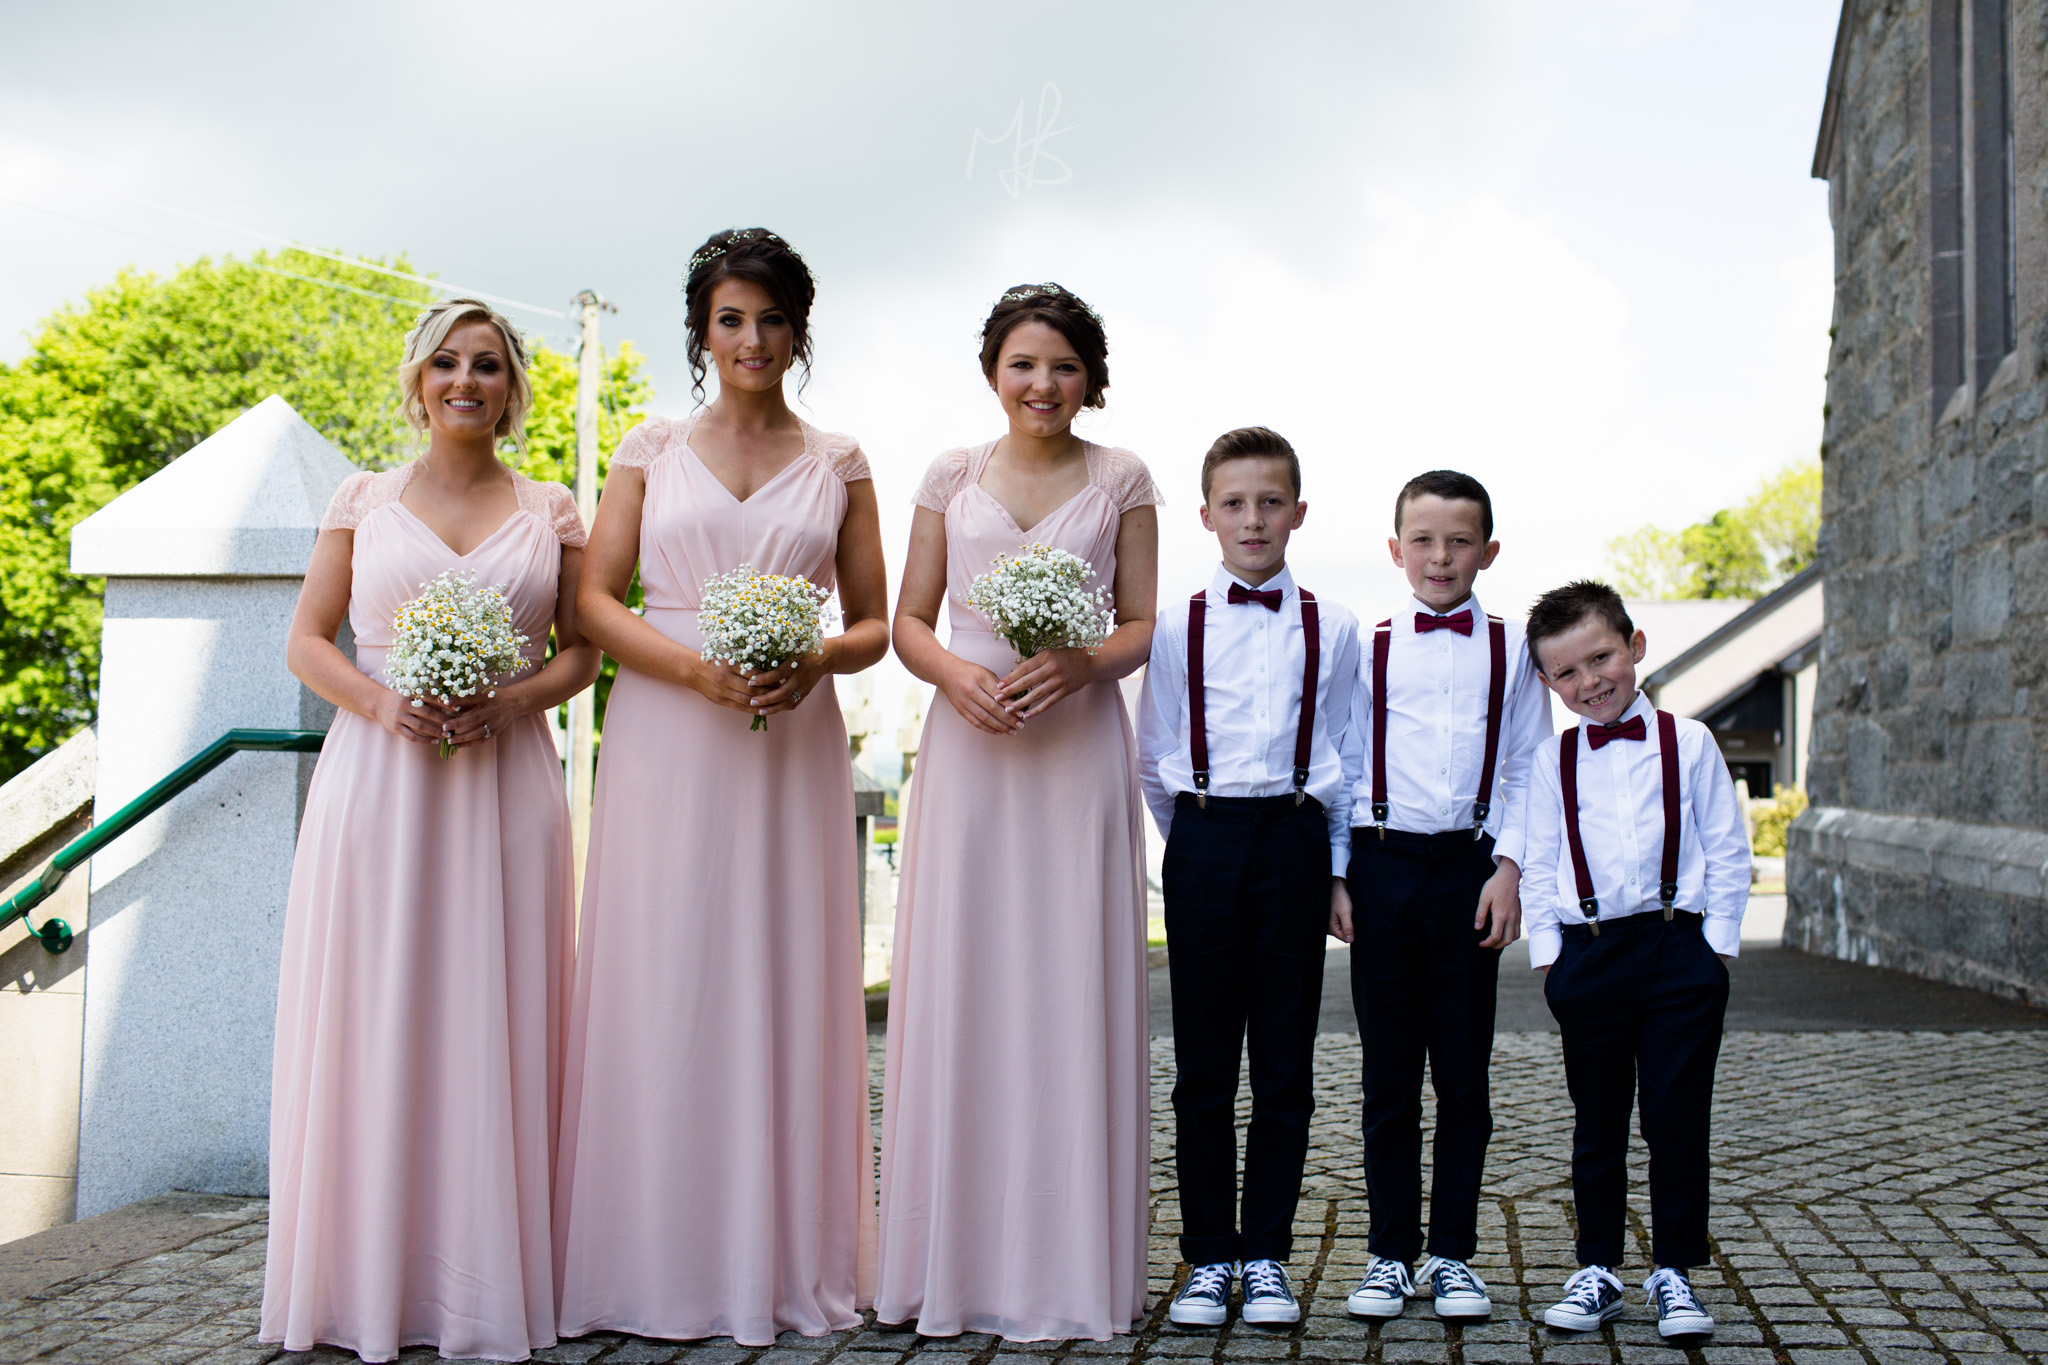 Northern_Ireland_Wedding-Photographer-Mark-Barnes-Newry_wedding_Photography-Katie&Darren-18.jpg